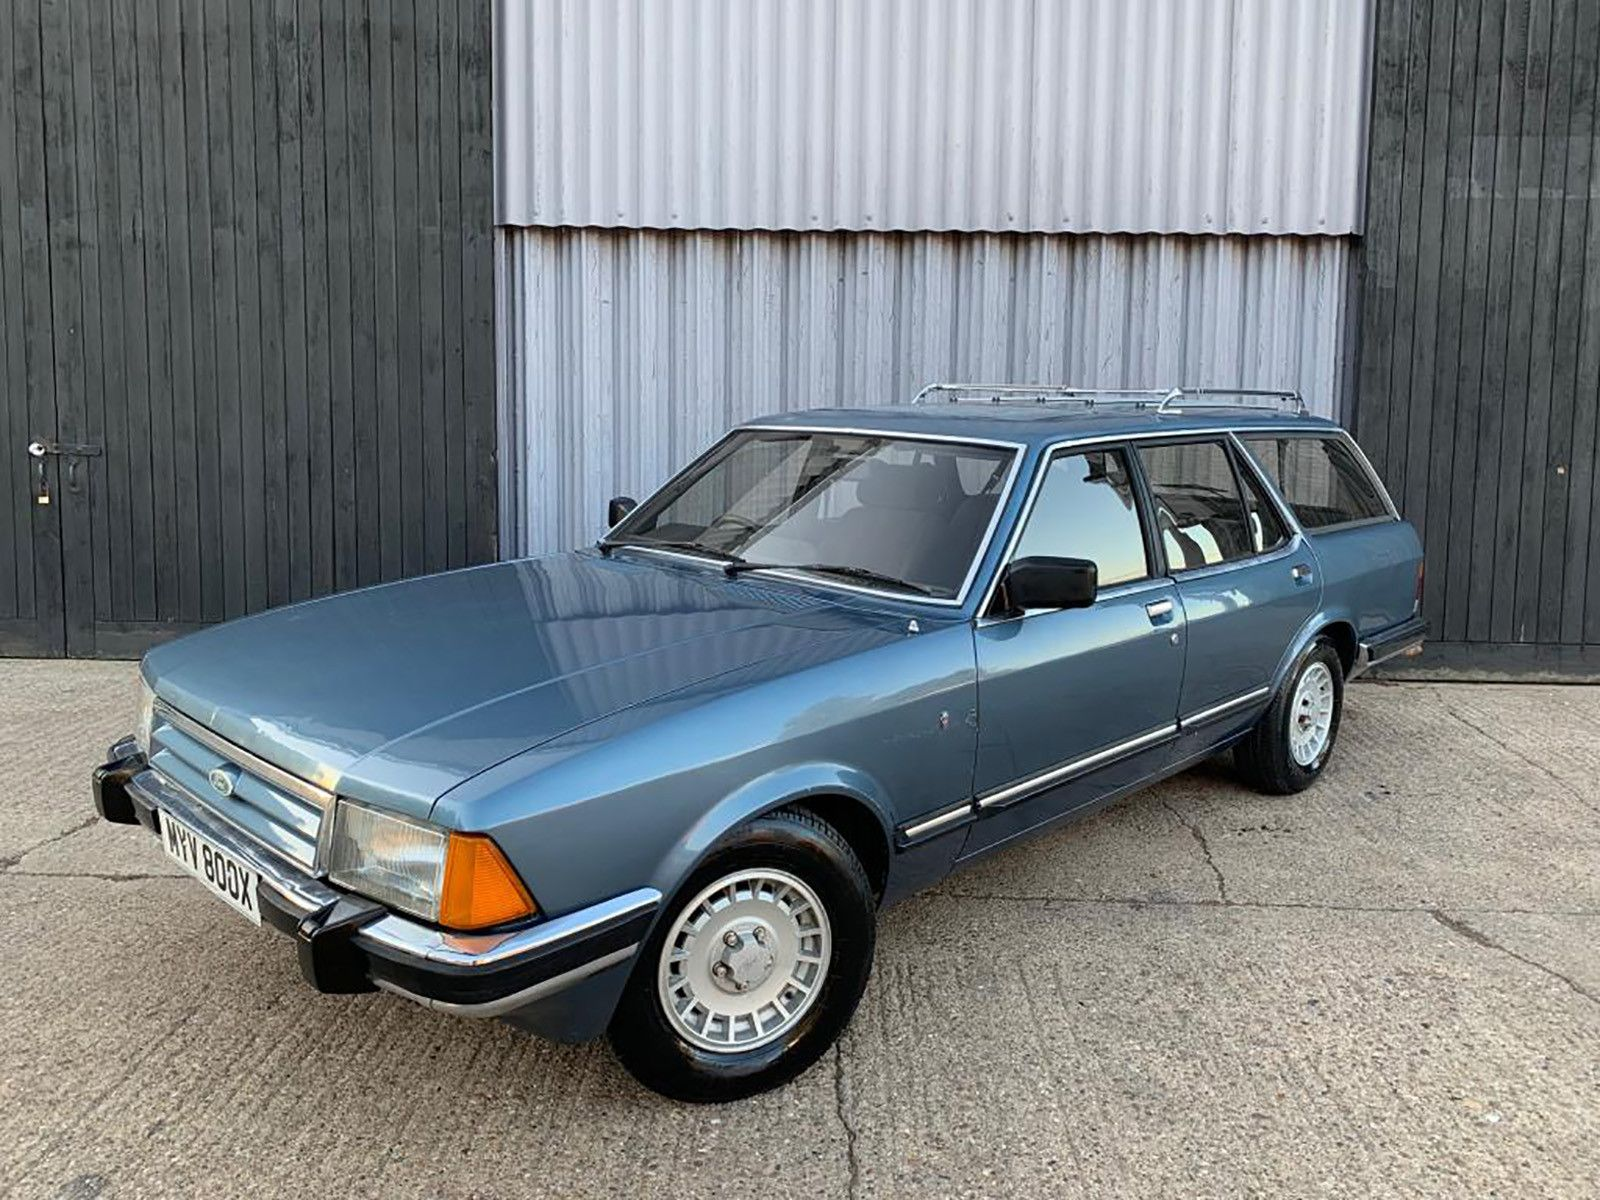 You Could Own A Ford Granada Driven By The Queen Mother That